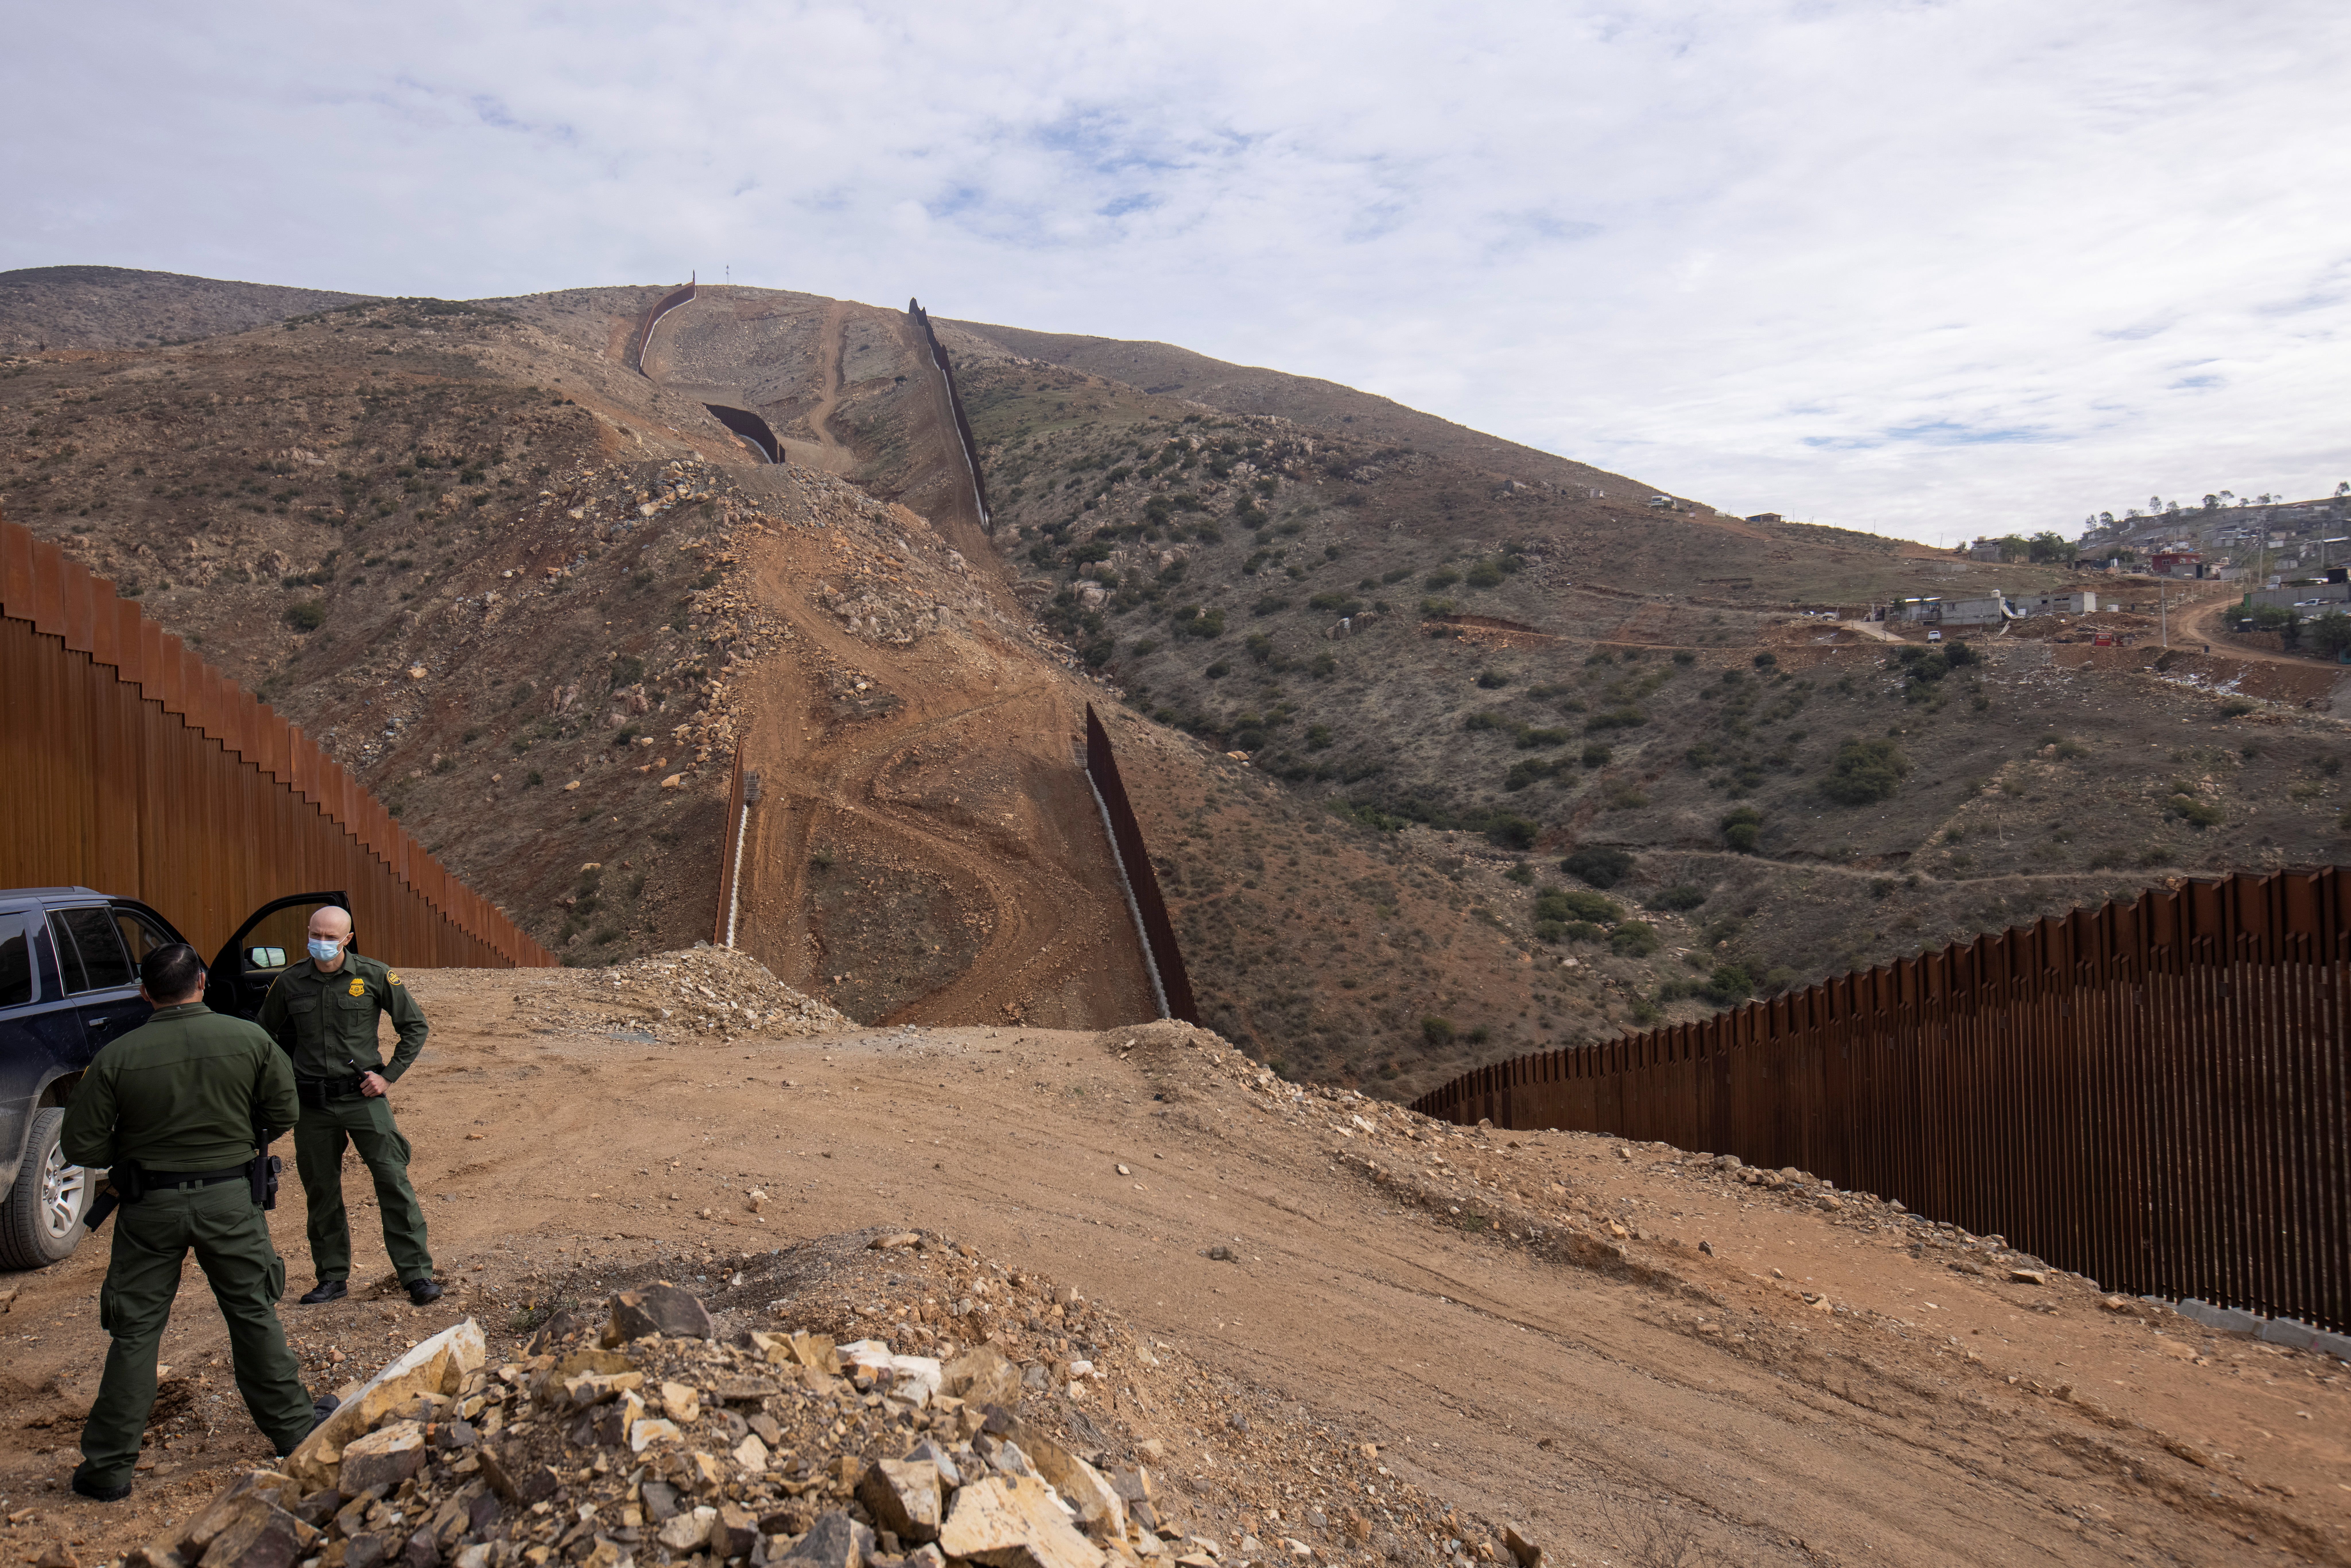 U.S. border patrol agents stand near the location of halted construction along the U.S. Border wall with Mexico as an unfinished  section is shown on Otay Mountain, east of San Diego, California, U.S., February 2, 2021. REUTERS/Mike Blake